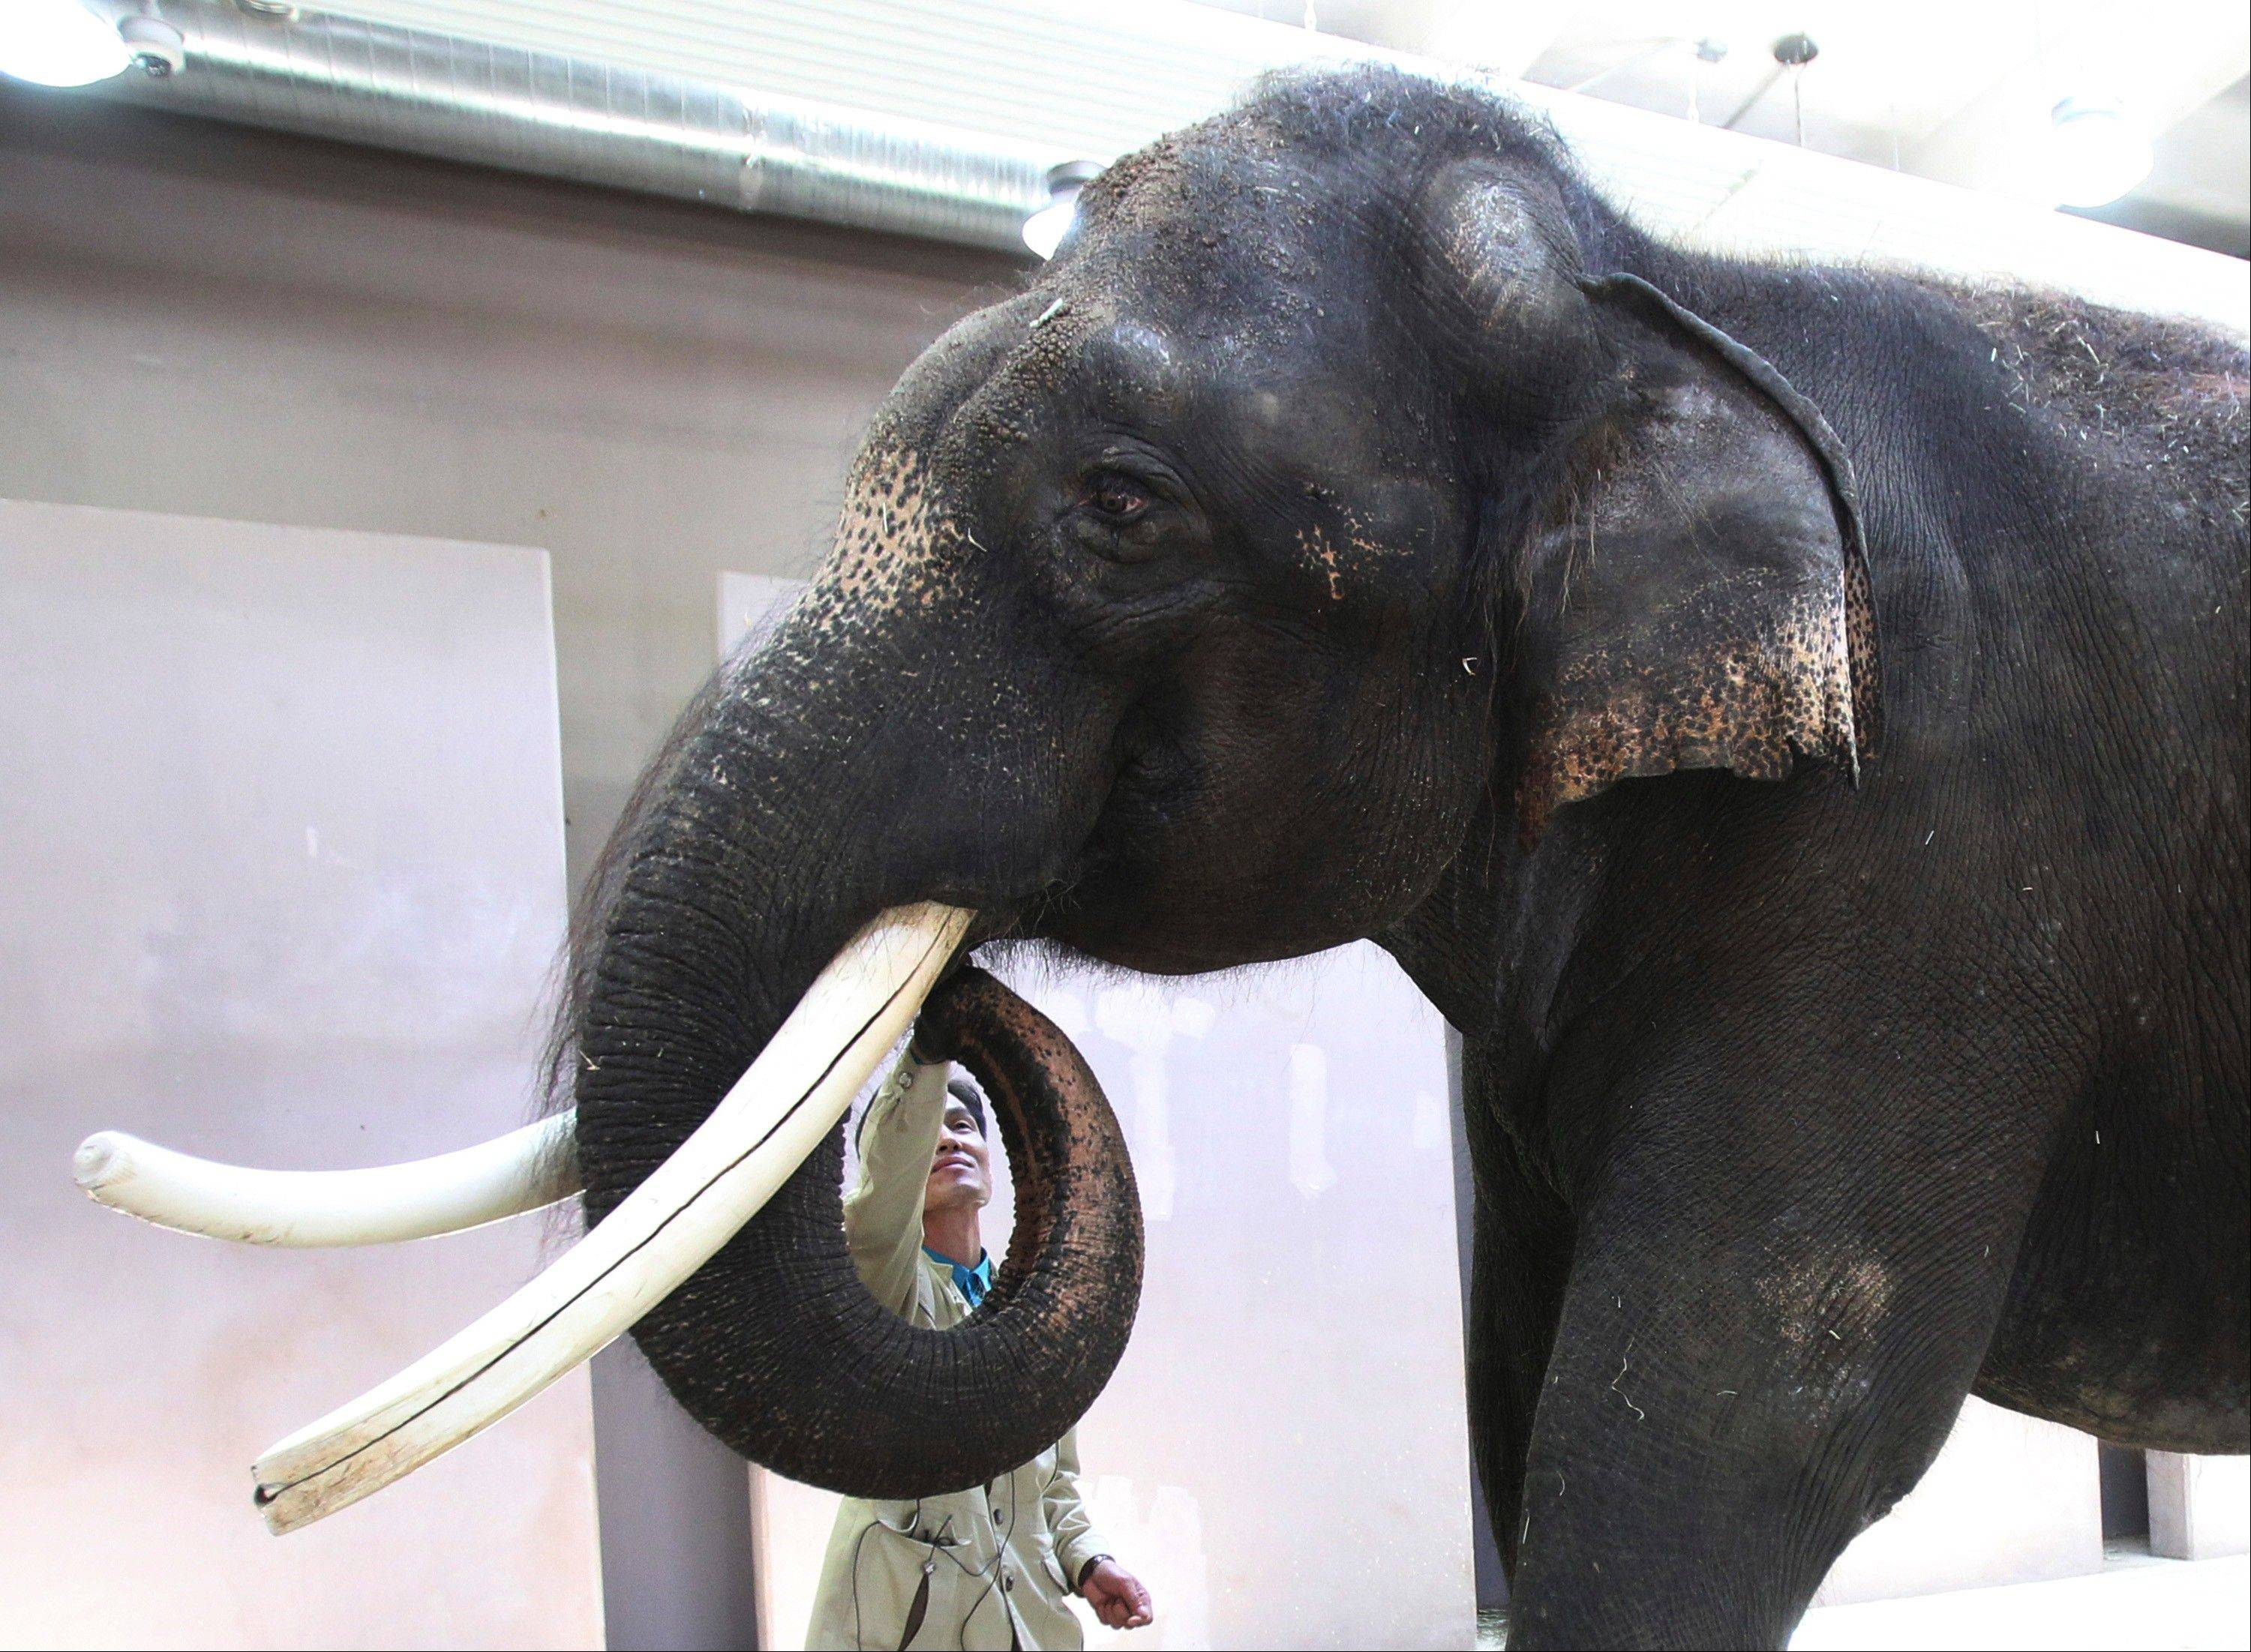 Chief trainer Kim Jong-gab touches the mouth of Koshik, a 22-year-old Asian elephant, at the Everland amusement park in Yongin, South Korea, Friday, Nov. 2, 2012. Koshik uses his trunk to pick up not only food but also human vocabulary. He can reproduce five Korean words by tucking his trunk inside his mouth to modulate sound.